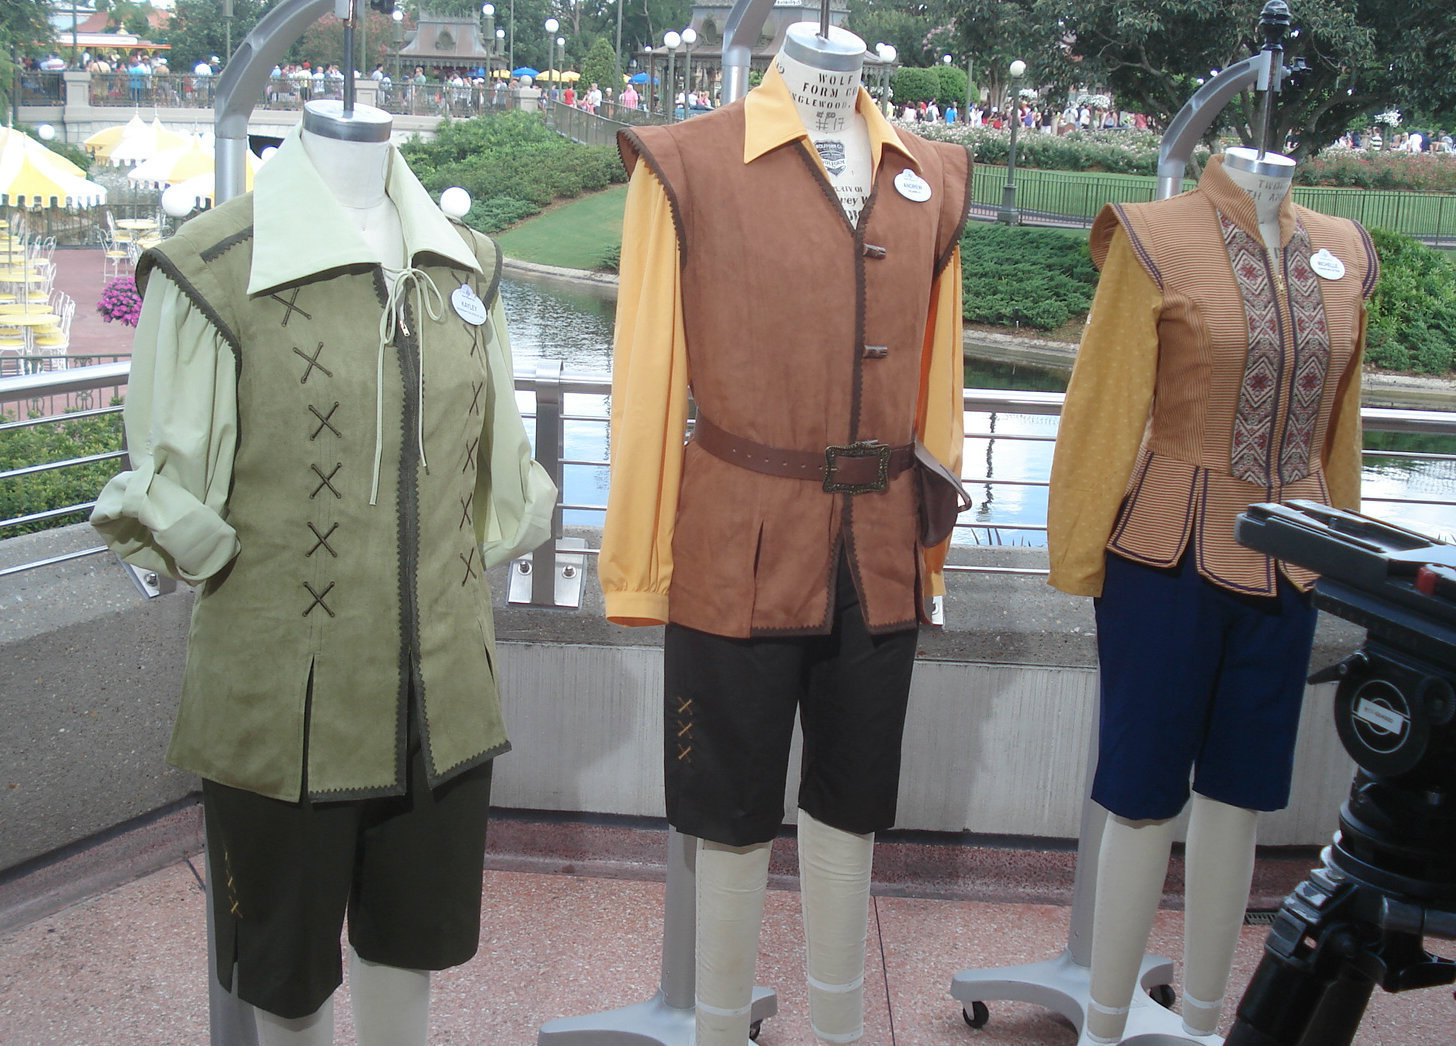 Magic Kingdom: New Fantasyland costumes - Fantasyland costumes